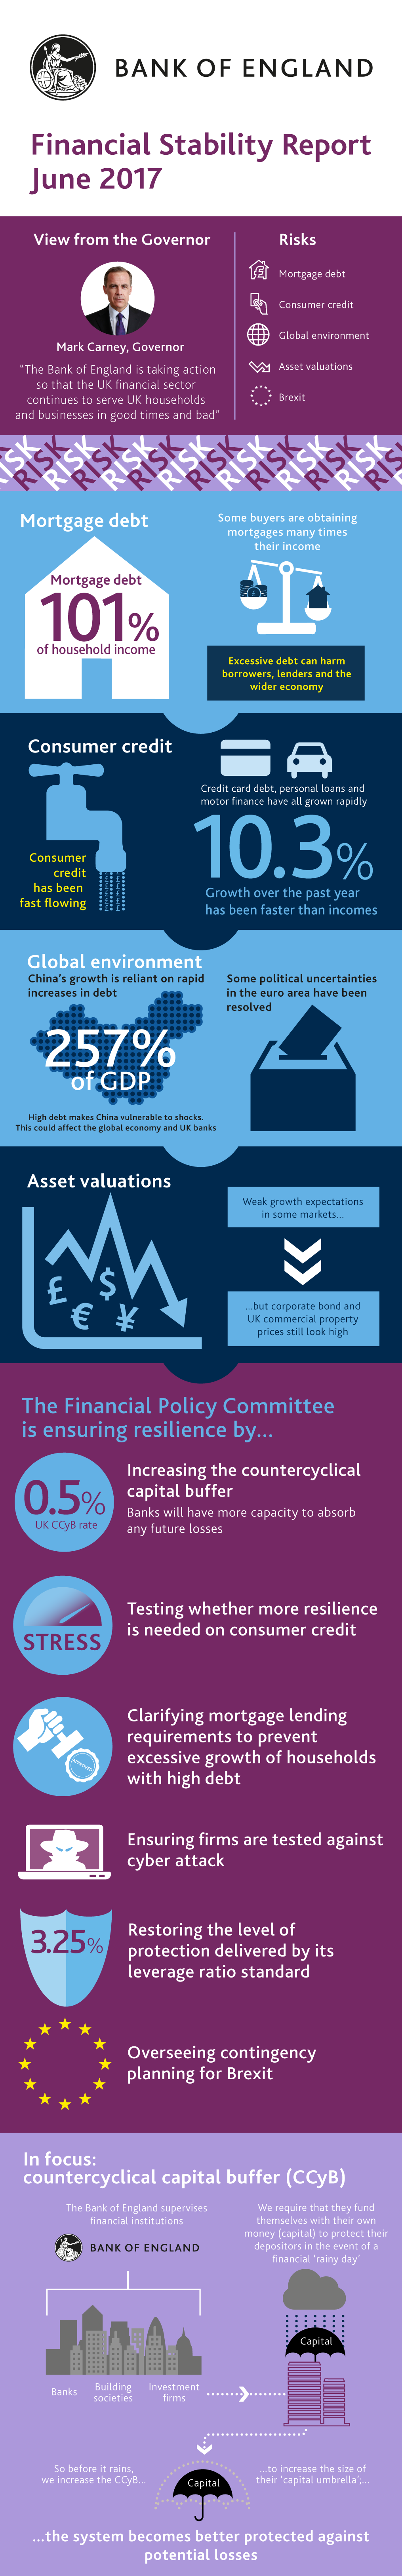 Visual summary of the Financial Stability Report - June 2017